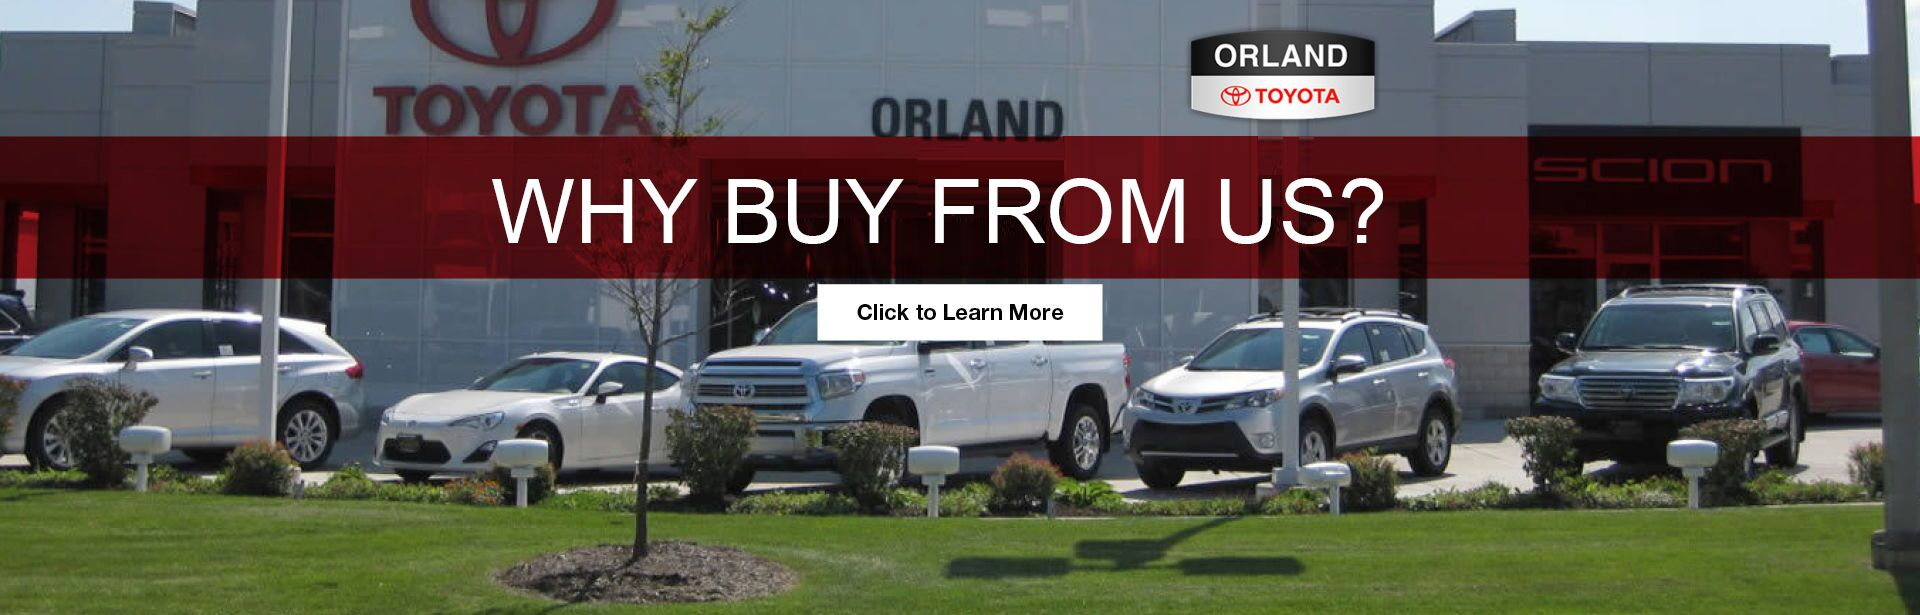 Used Car Batteries Near Me >> Orland Toyota   Toyota Dealership near Chicago, Tinley Park IL   Used Toyota